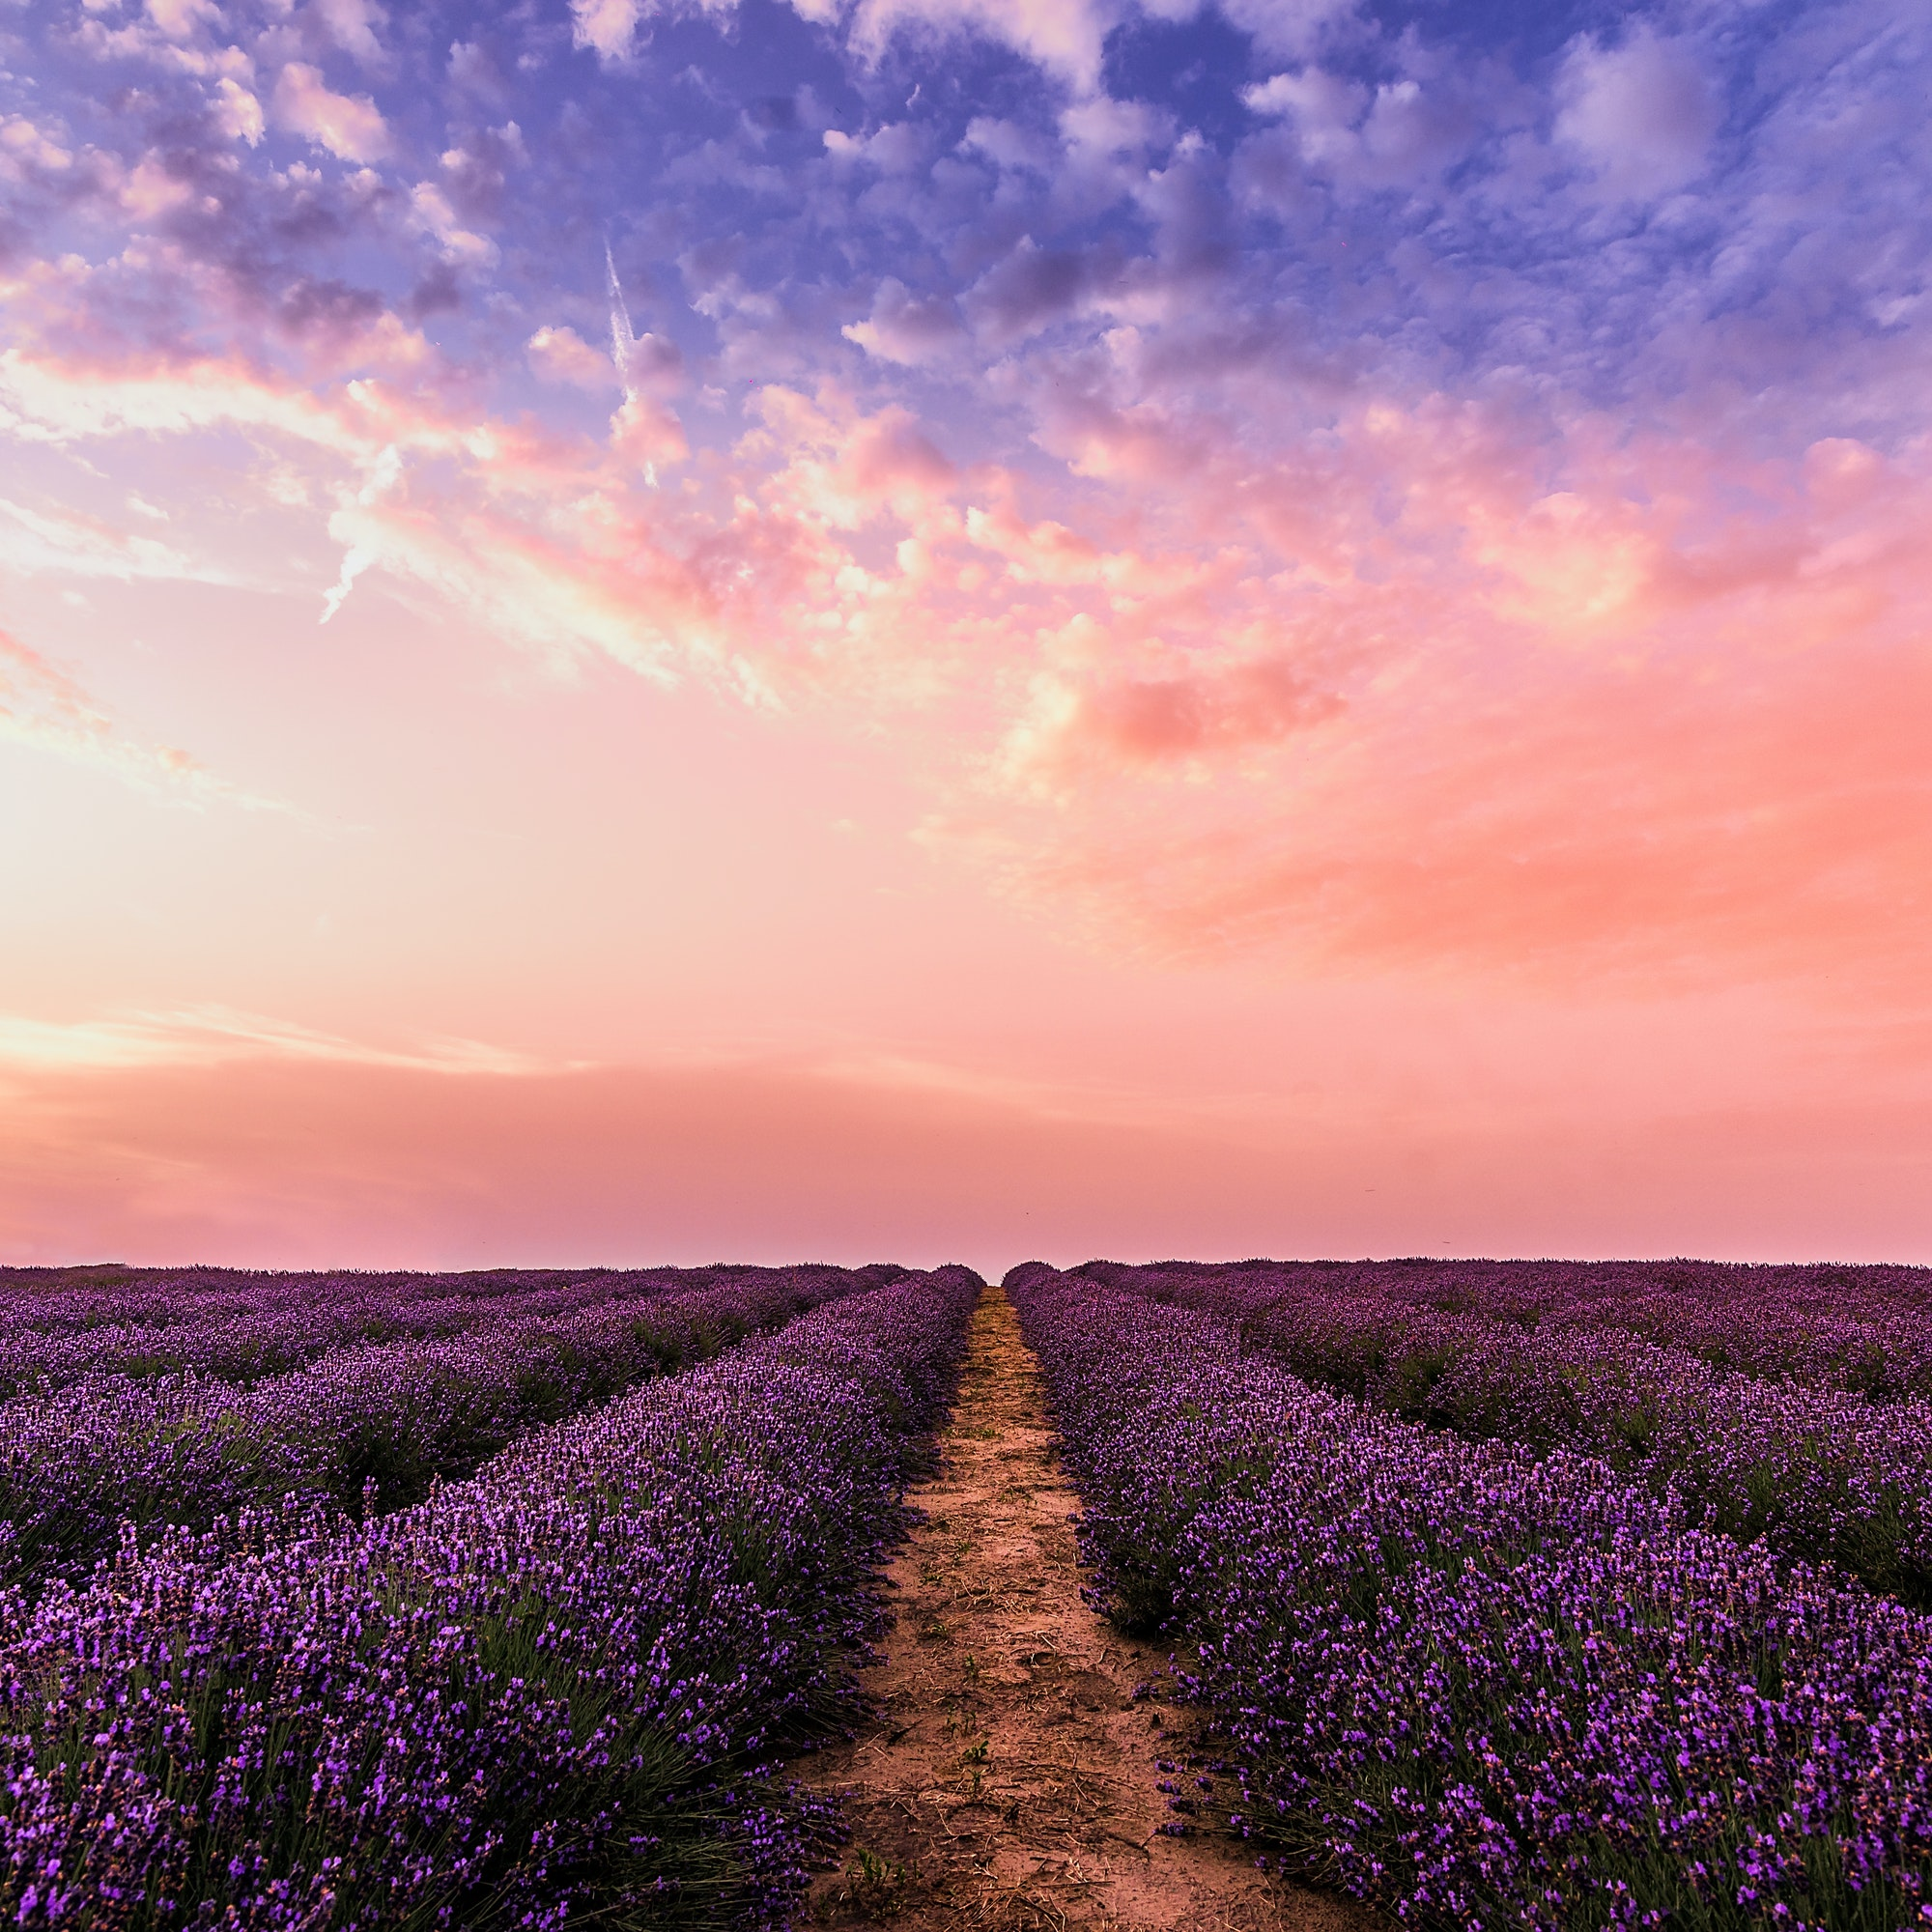 Lavender field in full bloom underneath a pretty pink sky